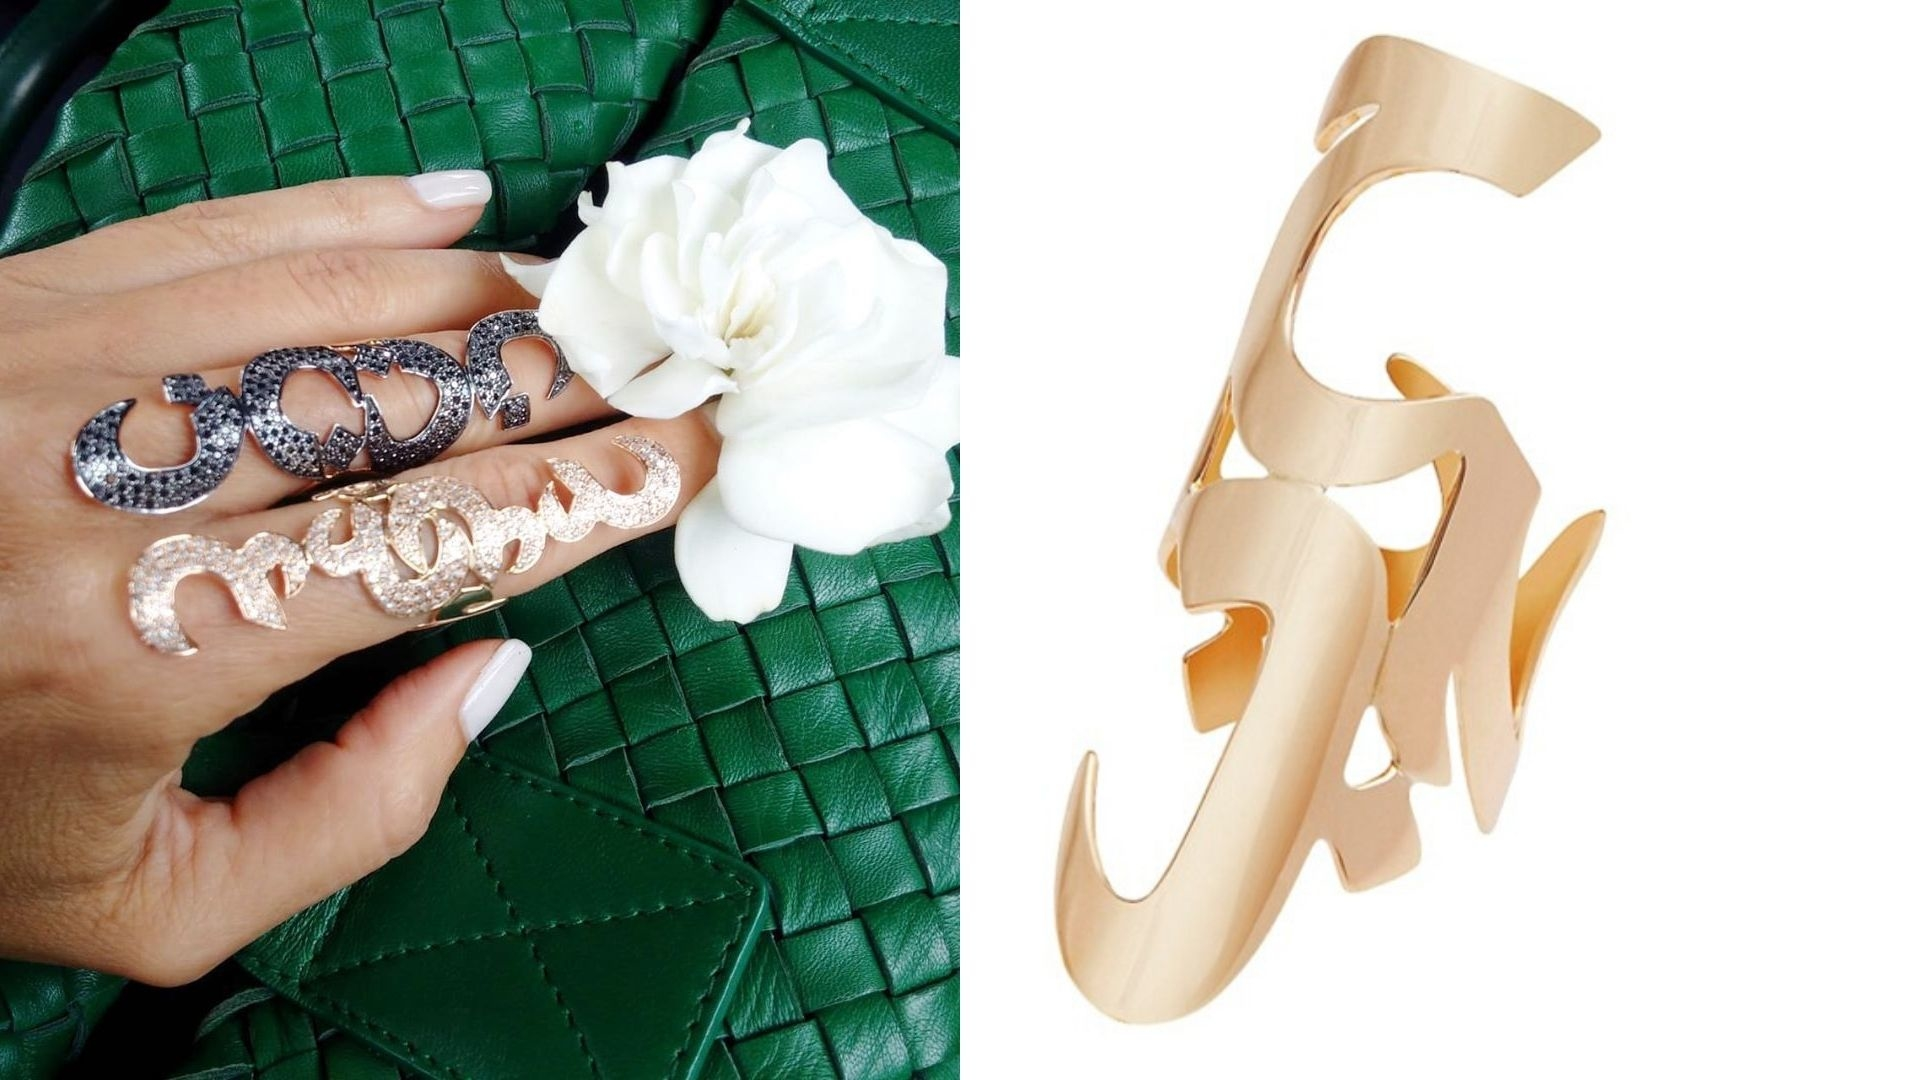 Bil Arabi Donates Its Signature 'Love' Ring To Abu Dhabi Dream Ball's Silent Auction